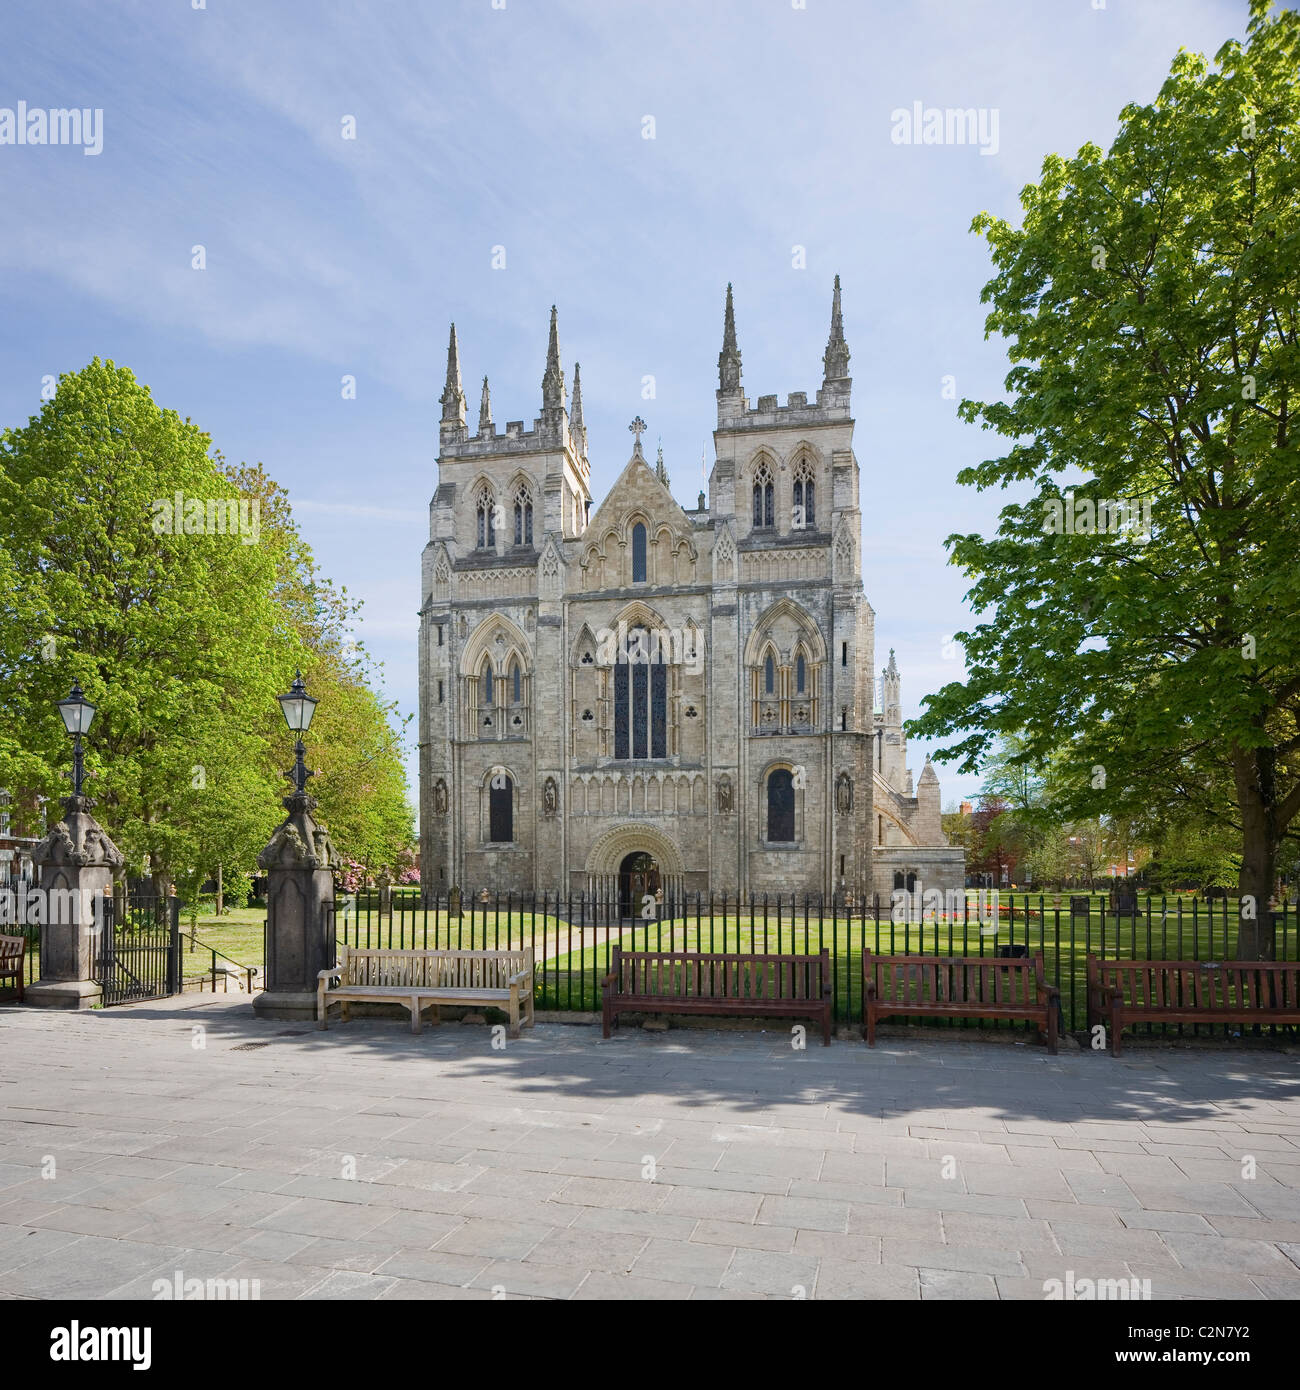 Selby Abbey a medieval abbey church and present day Anglican Parish Church at Selby North Yorkshire U.K - Stock Image